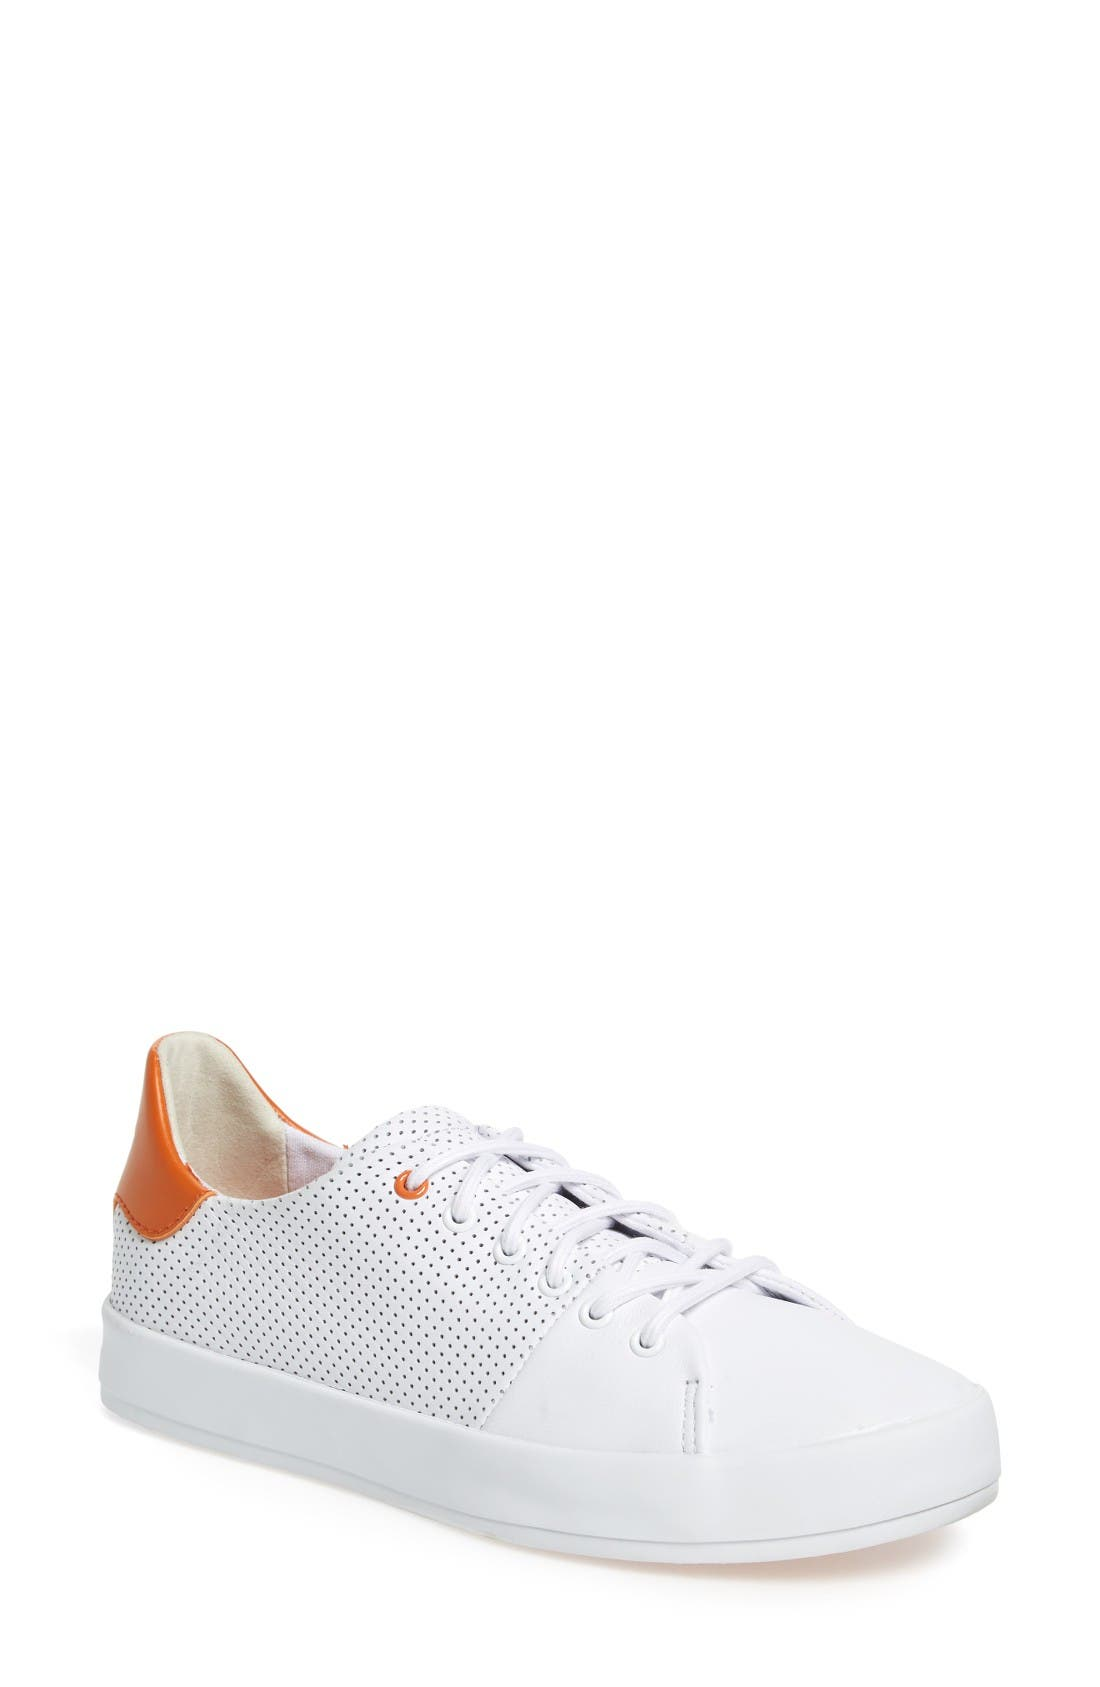 CREATIVE RECREATION x Nick Jonas Carda Perforated Sneaker